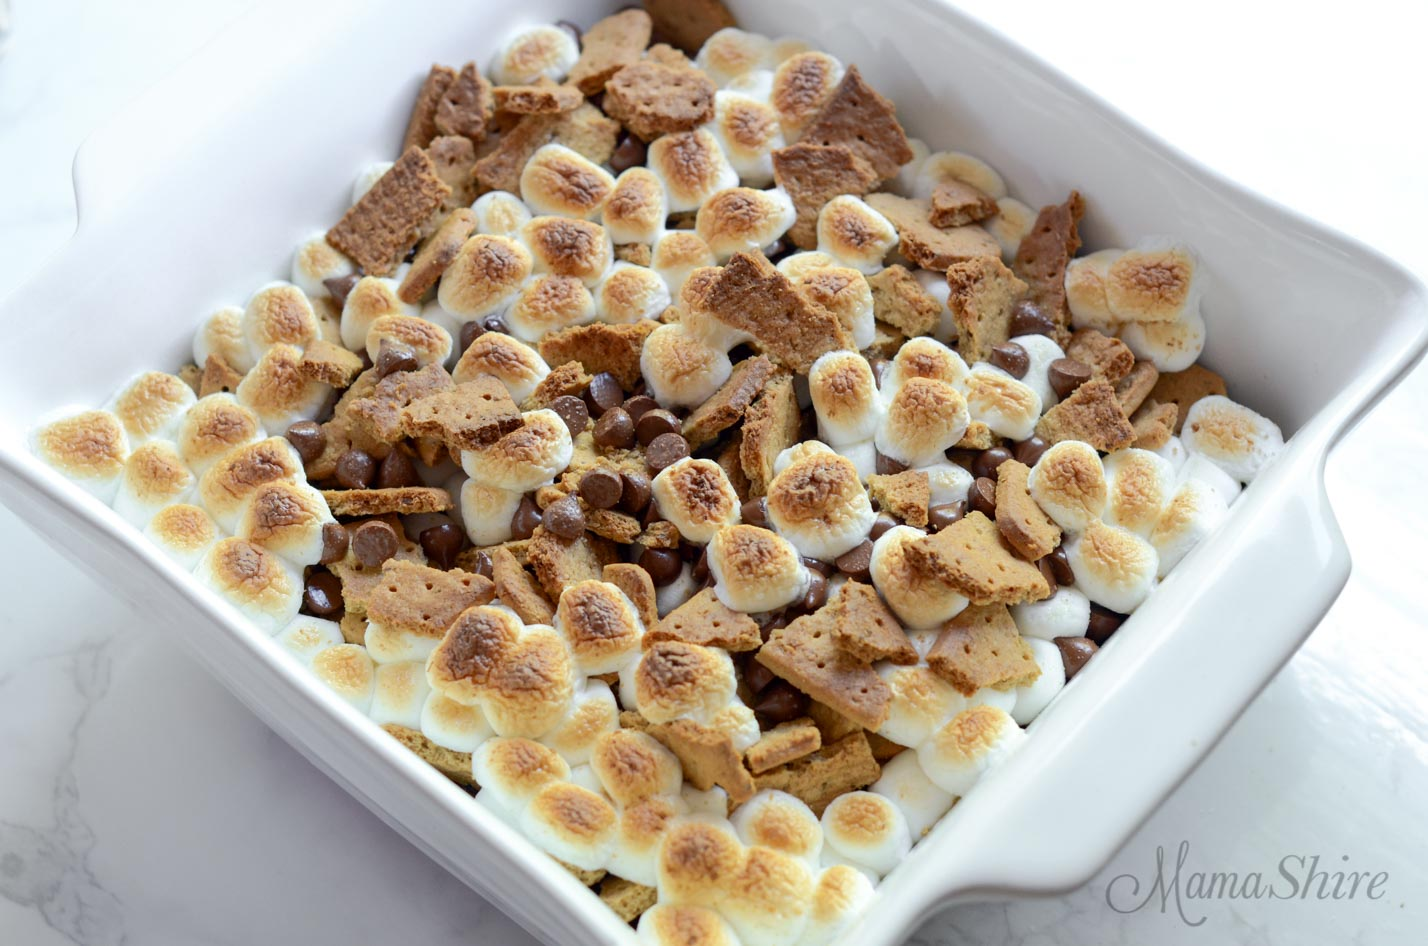 Fresh out of the oven brownies covered in roasted marshmallows, crushed graham crackers, and melted chocolate chips.